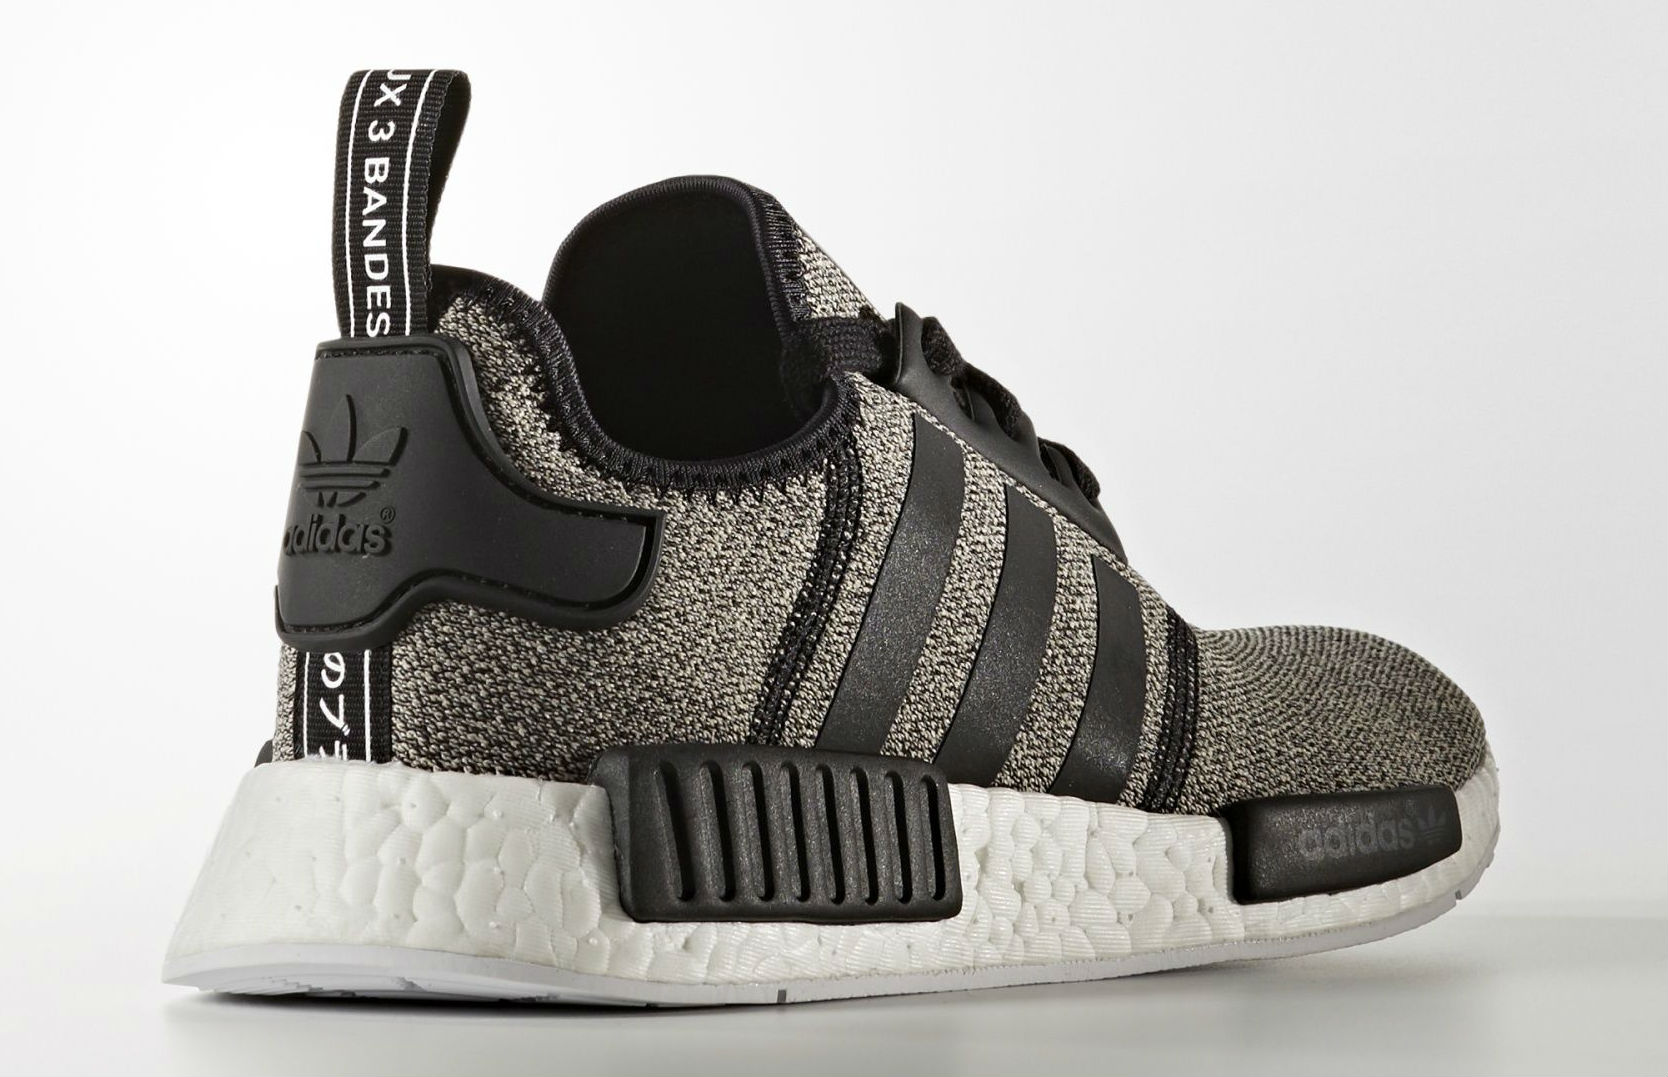 adidas NMD Black/White Reflective Lateral